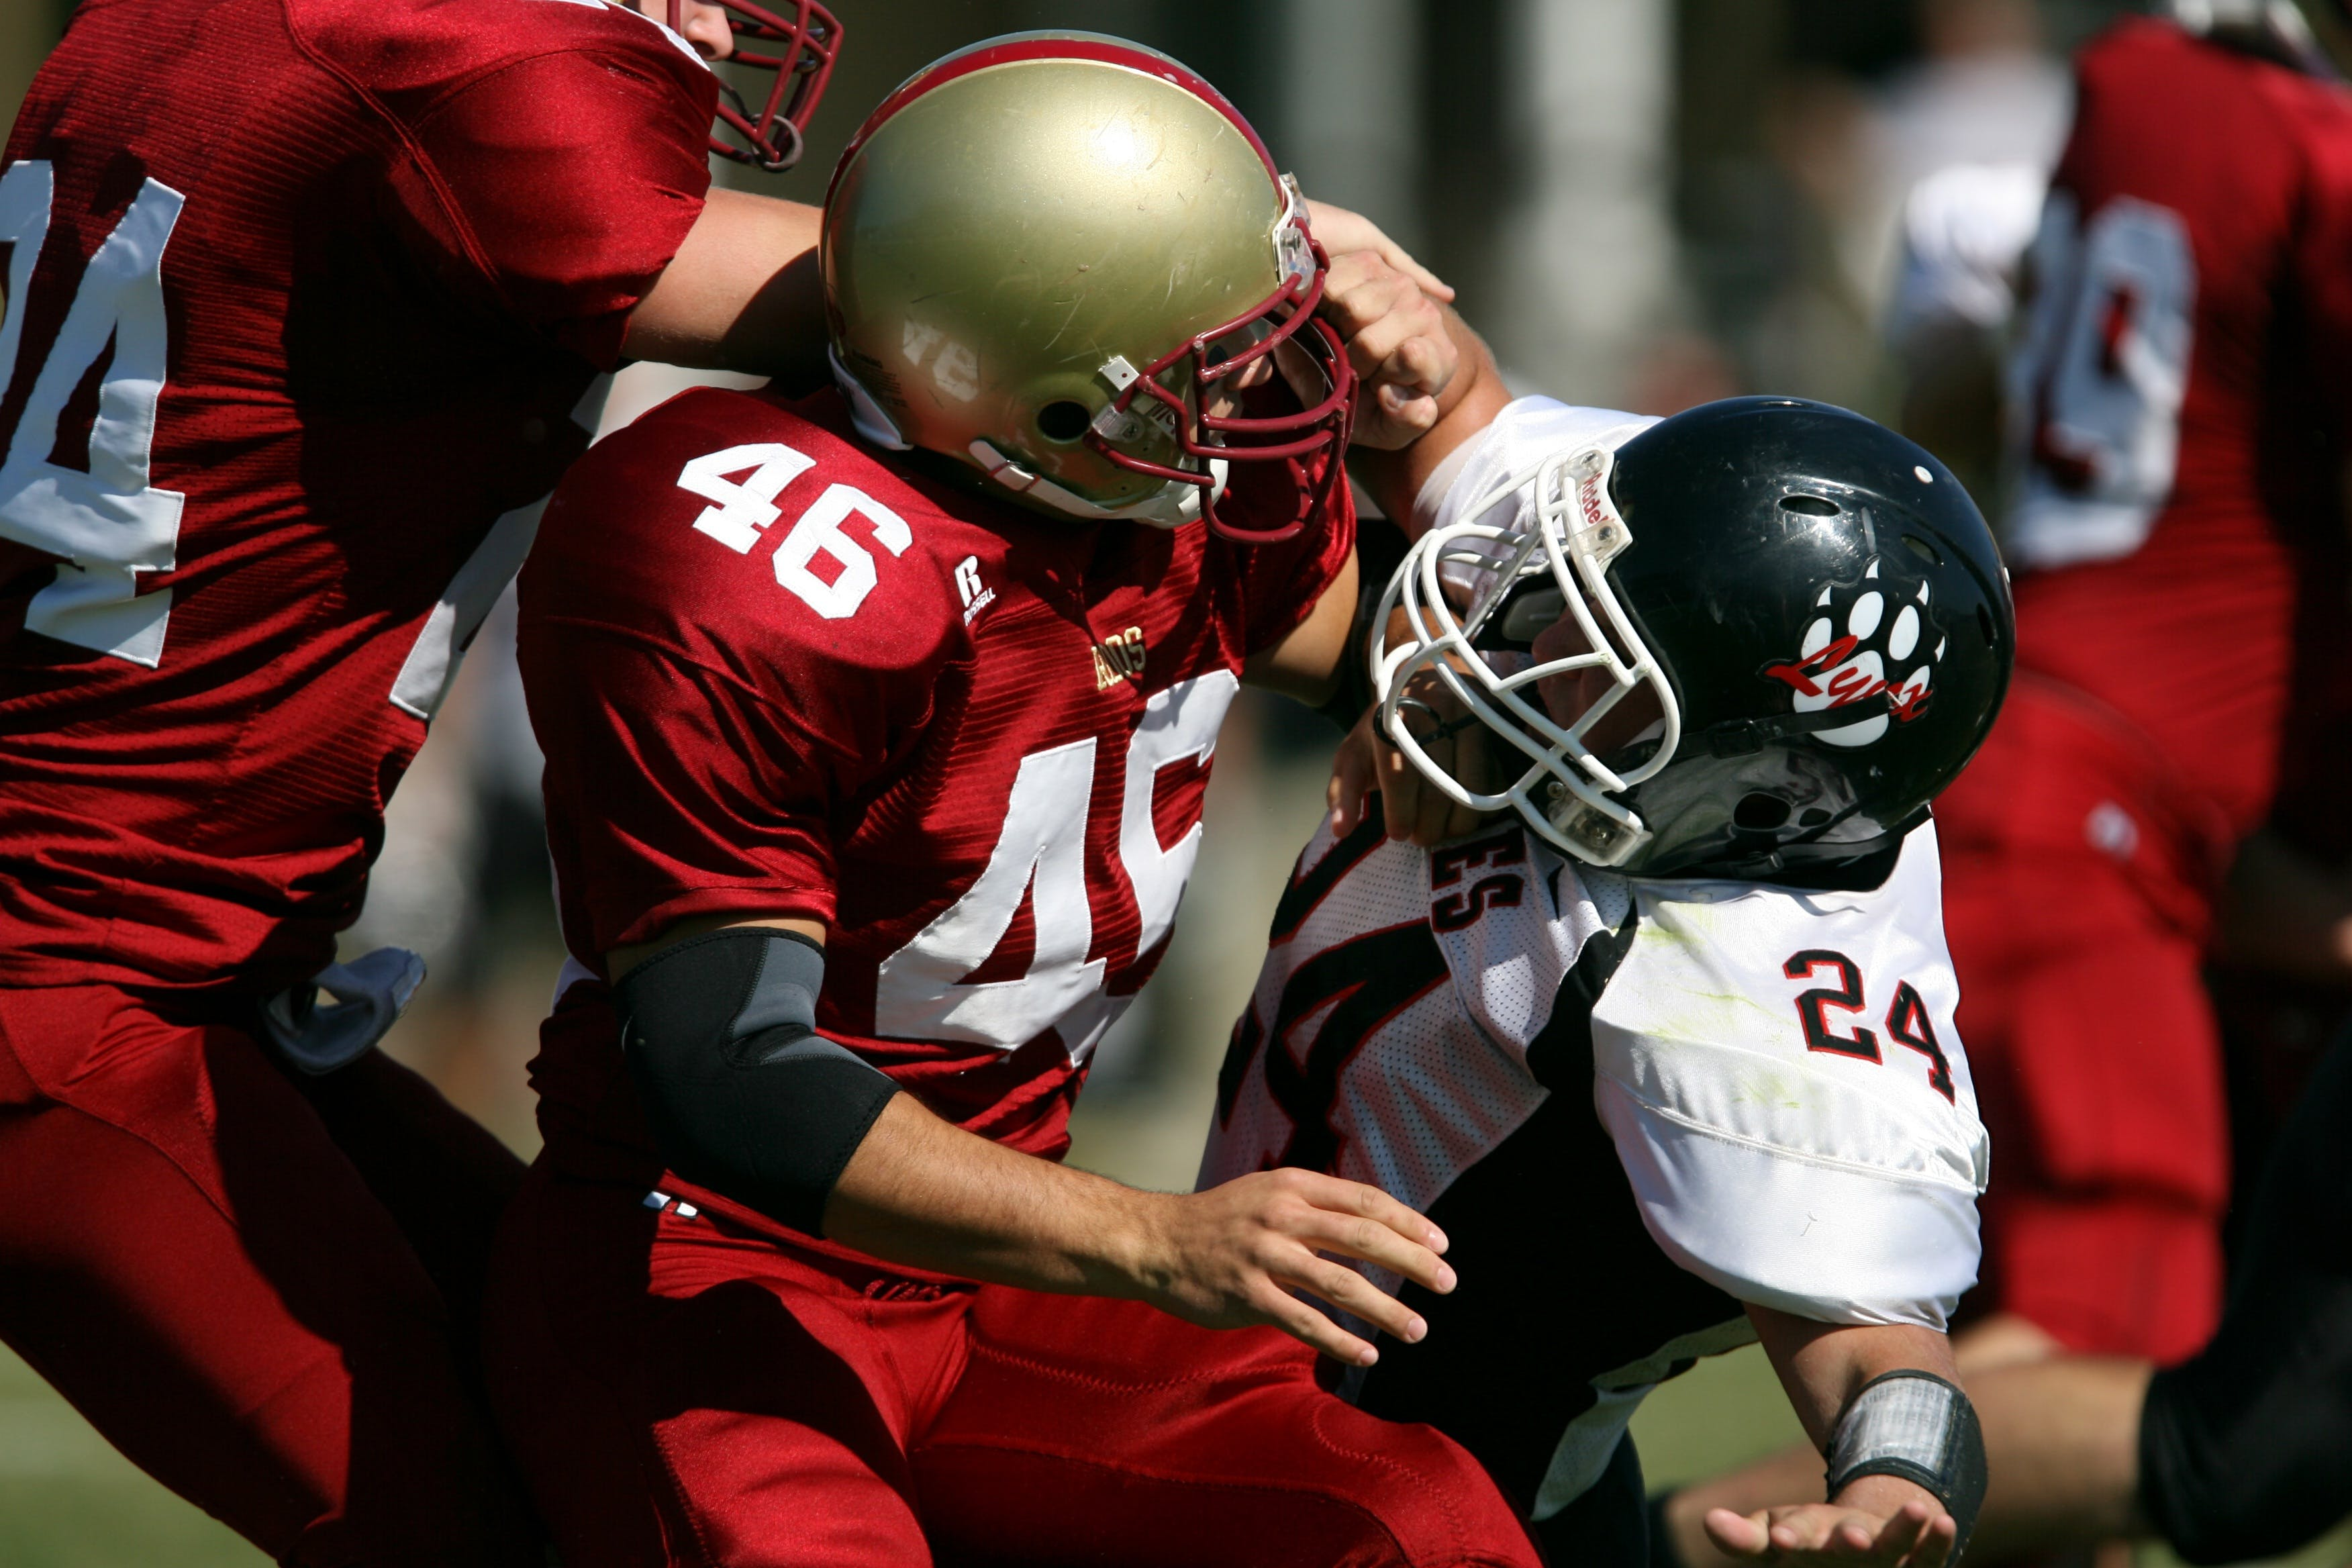 Free stock photo of American football, college athlete, college football, collision